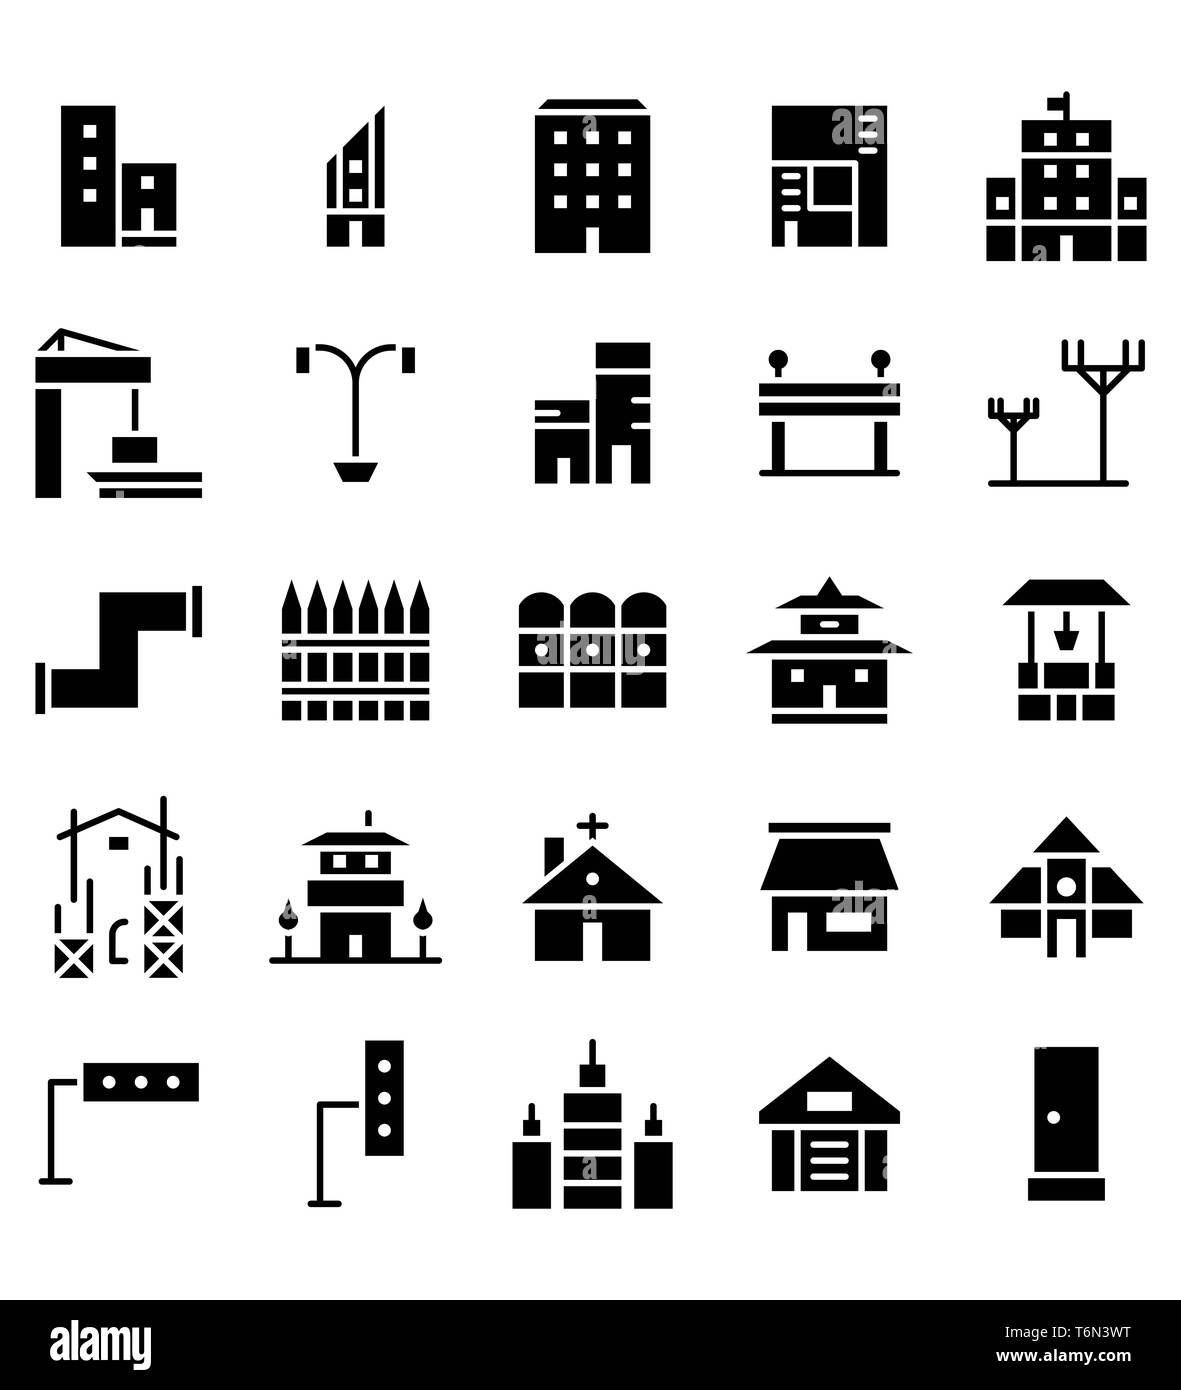 Set of Building and real estate city Black Glyph vector illustration icon or symbol. Editable stroke and color - Stock Image